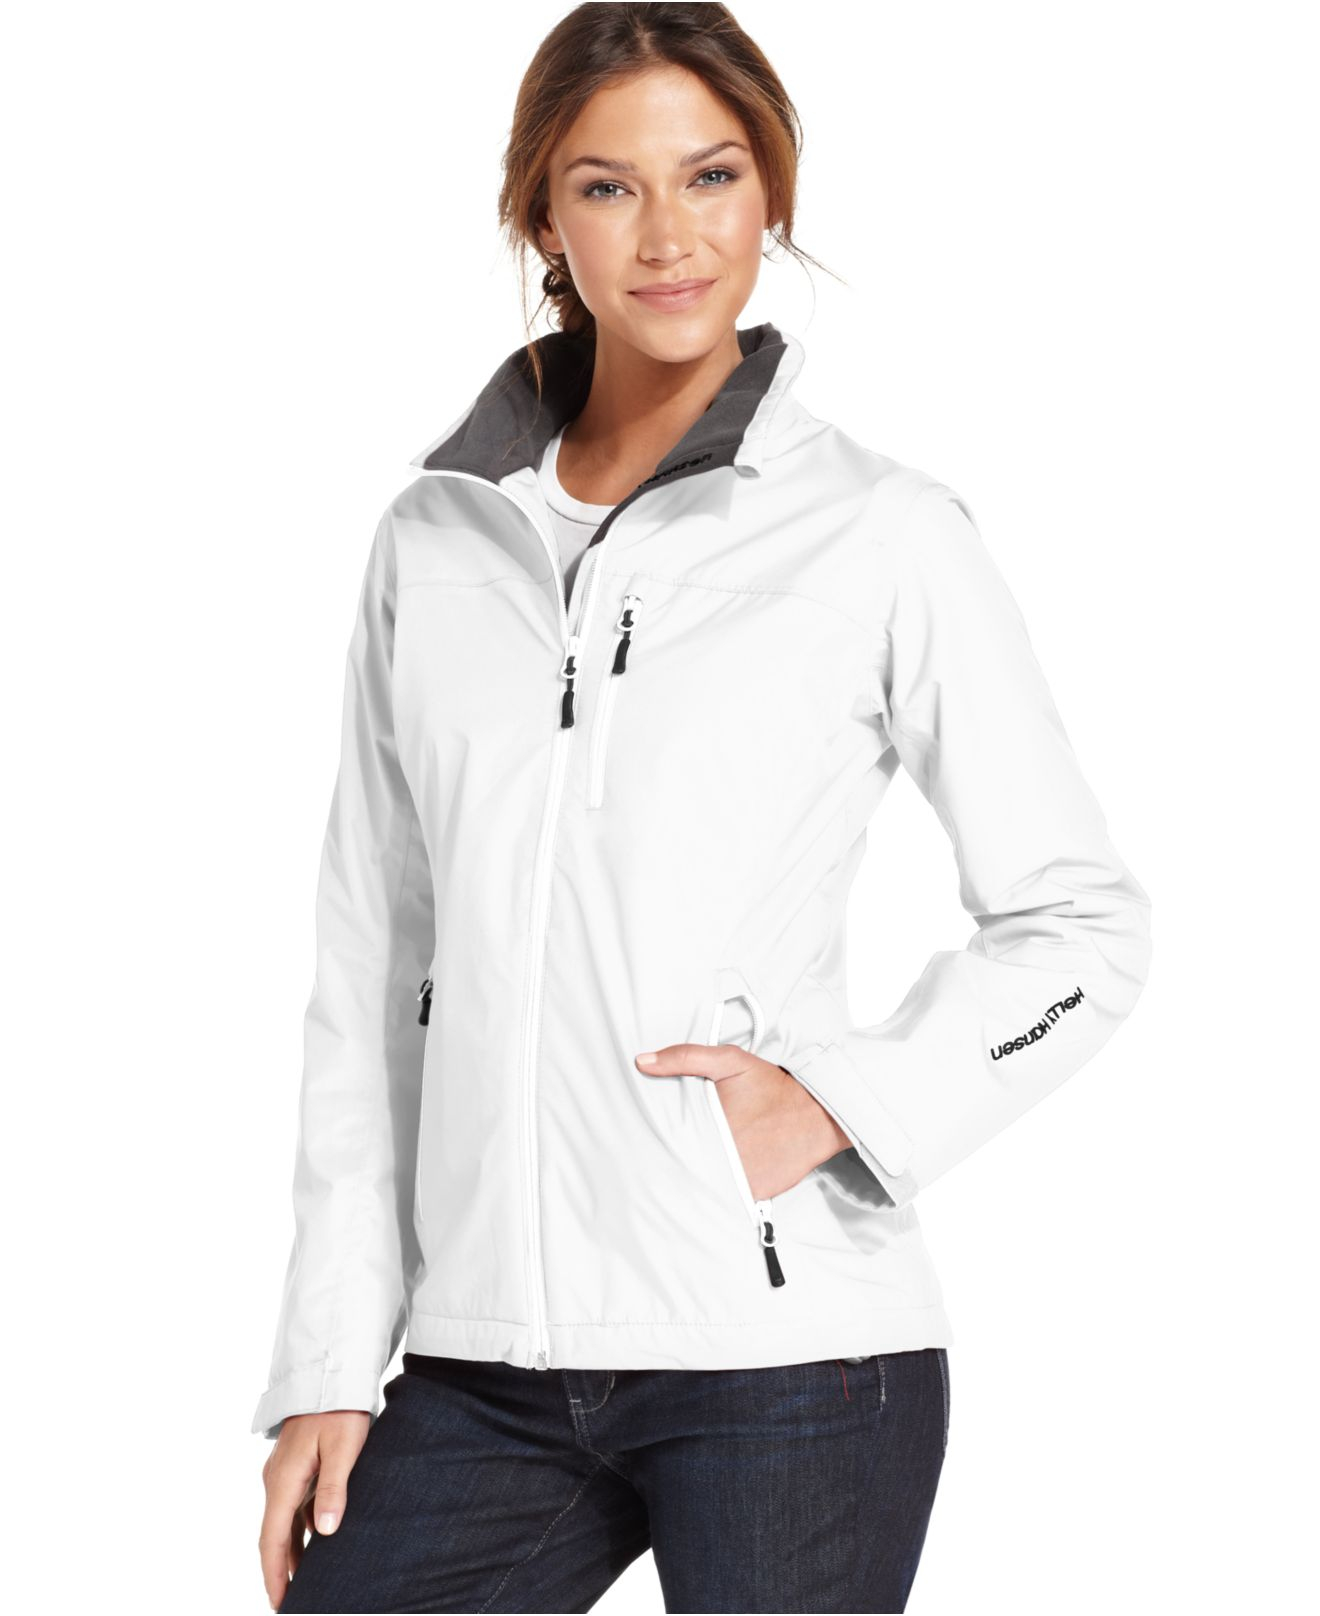 wholesale price attractive colour price remains stable Crew Midlayer Jacket